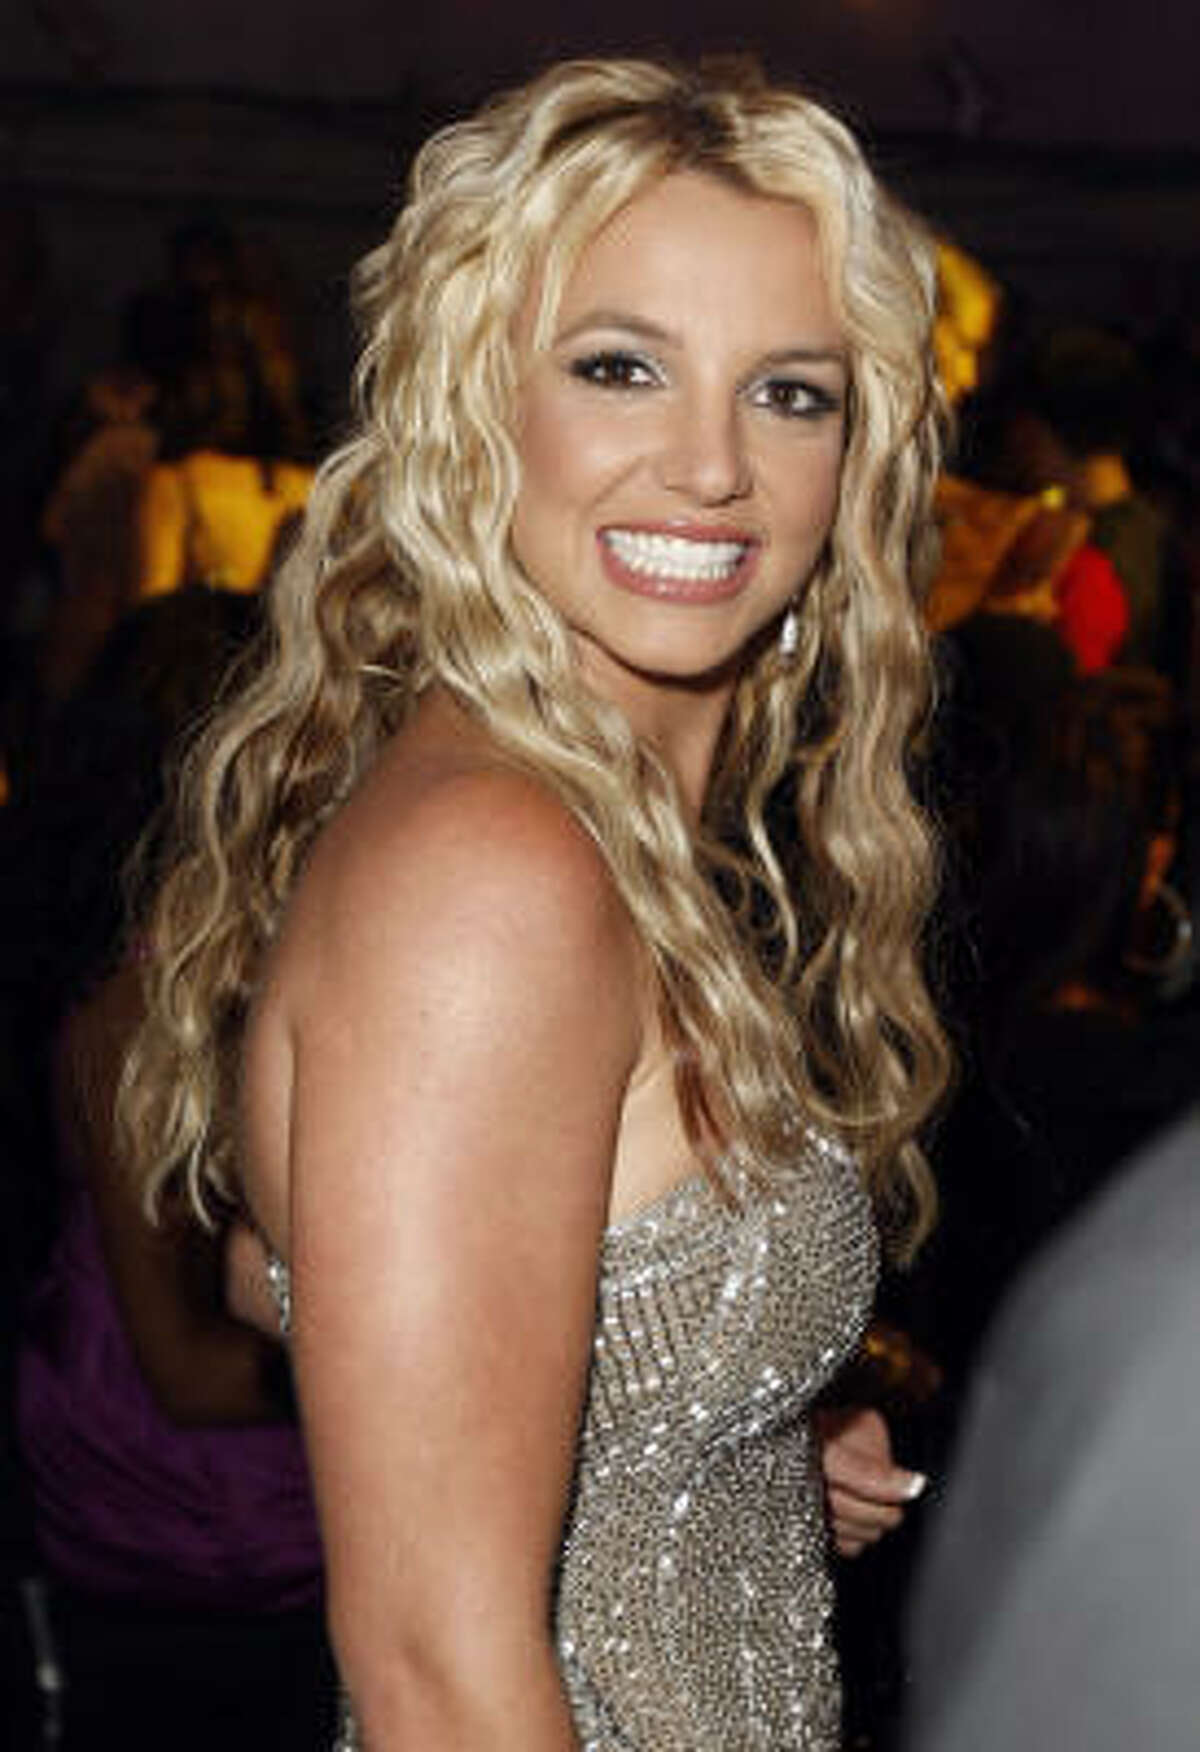 Britney Spears is one of the mandy celebs using Twitter to connect with fans.